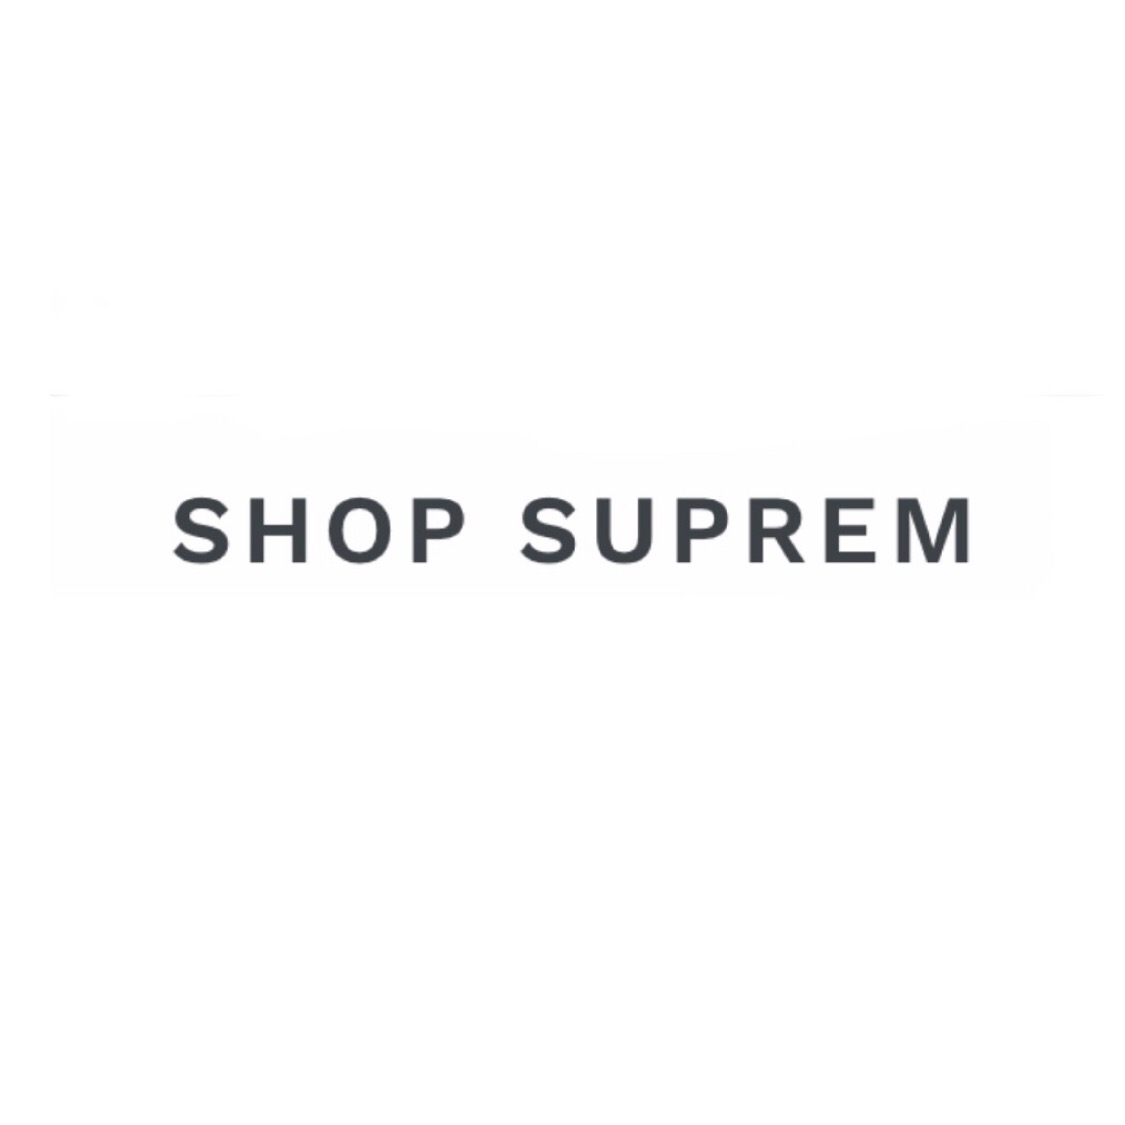 Shop Suprem Coupons and Promo Code